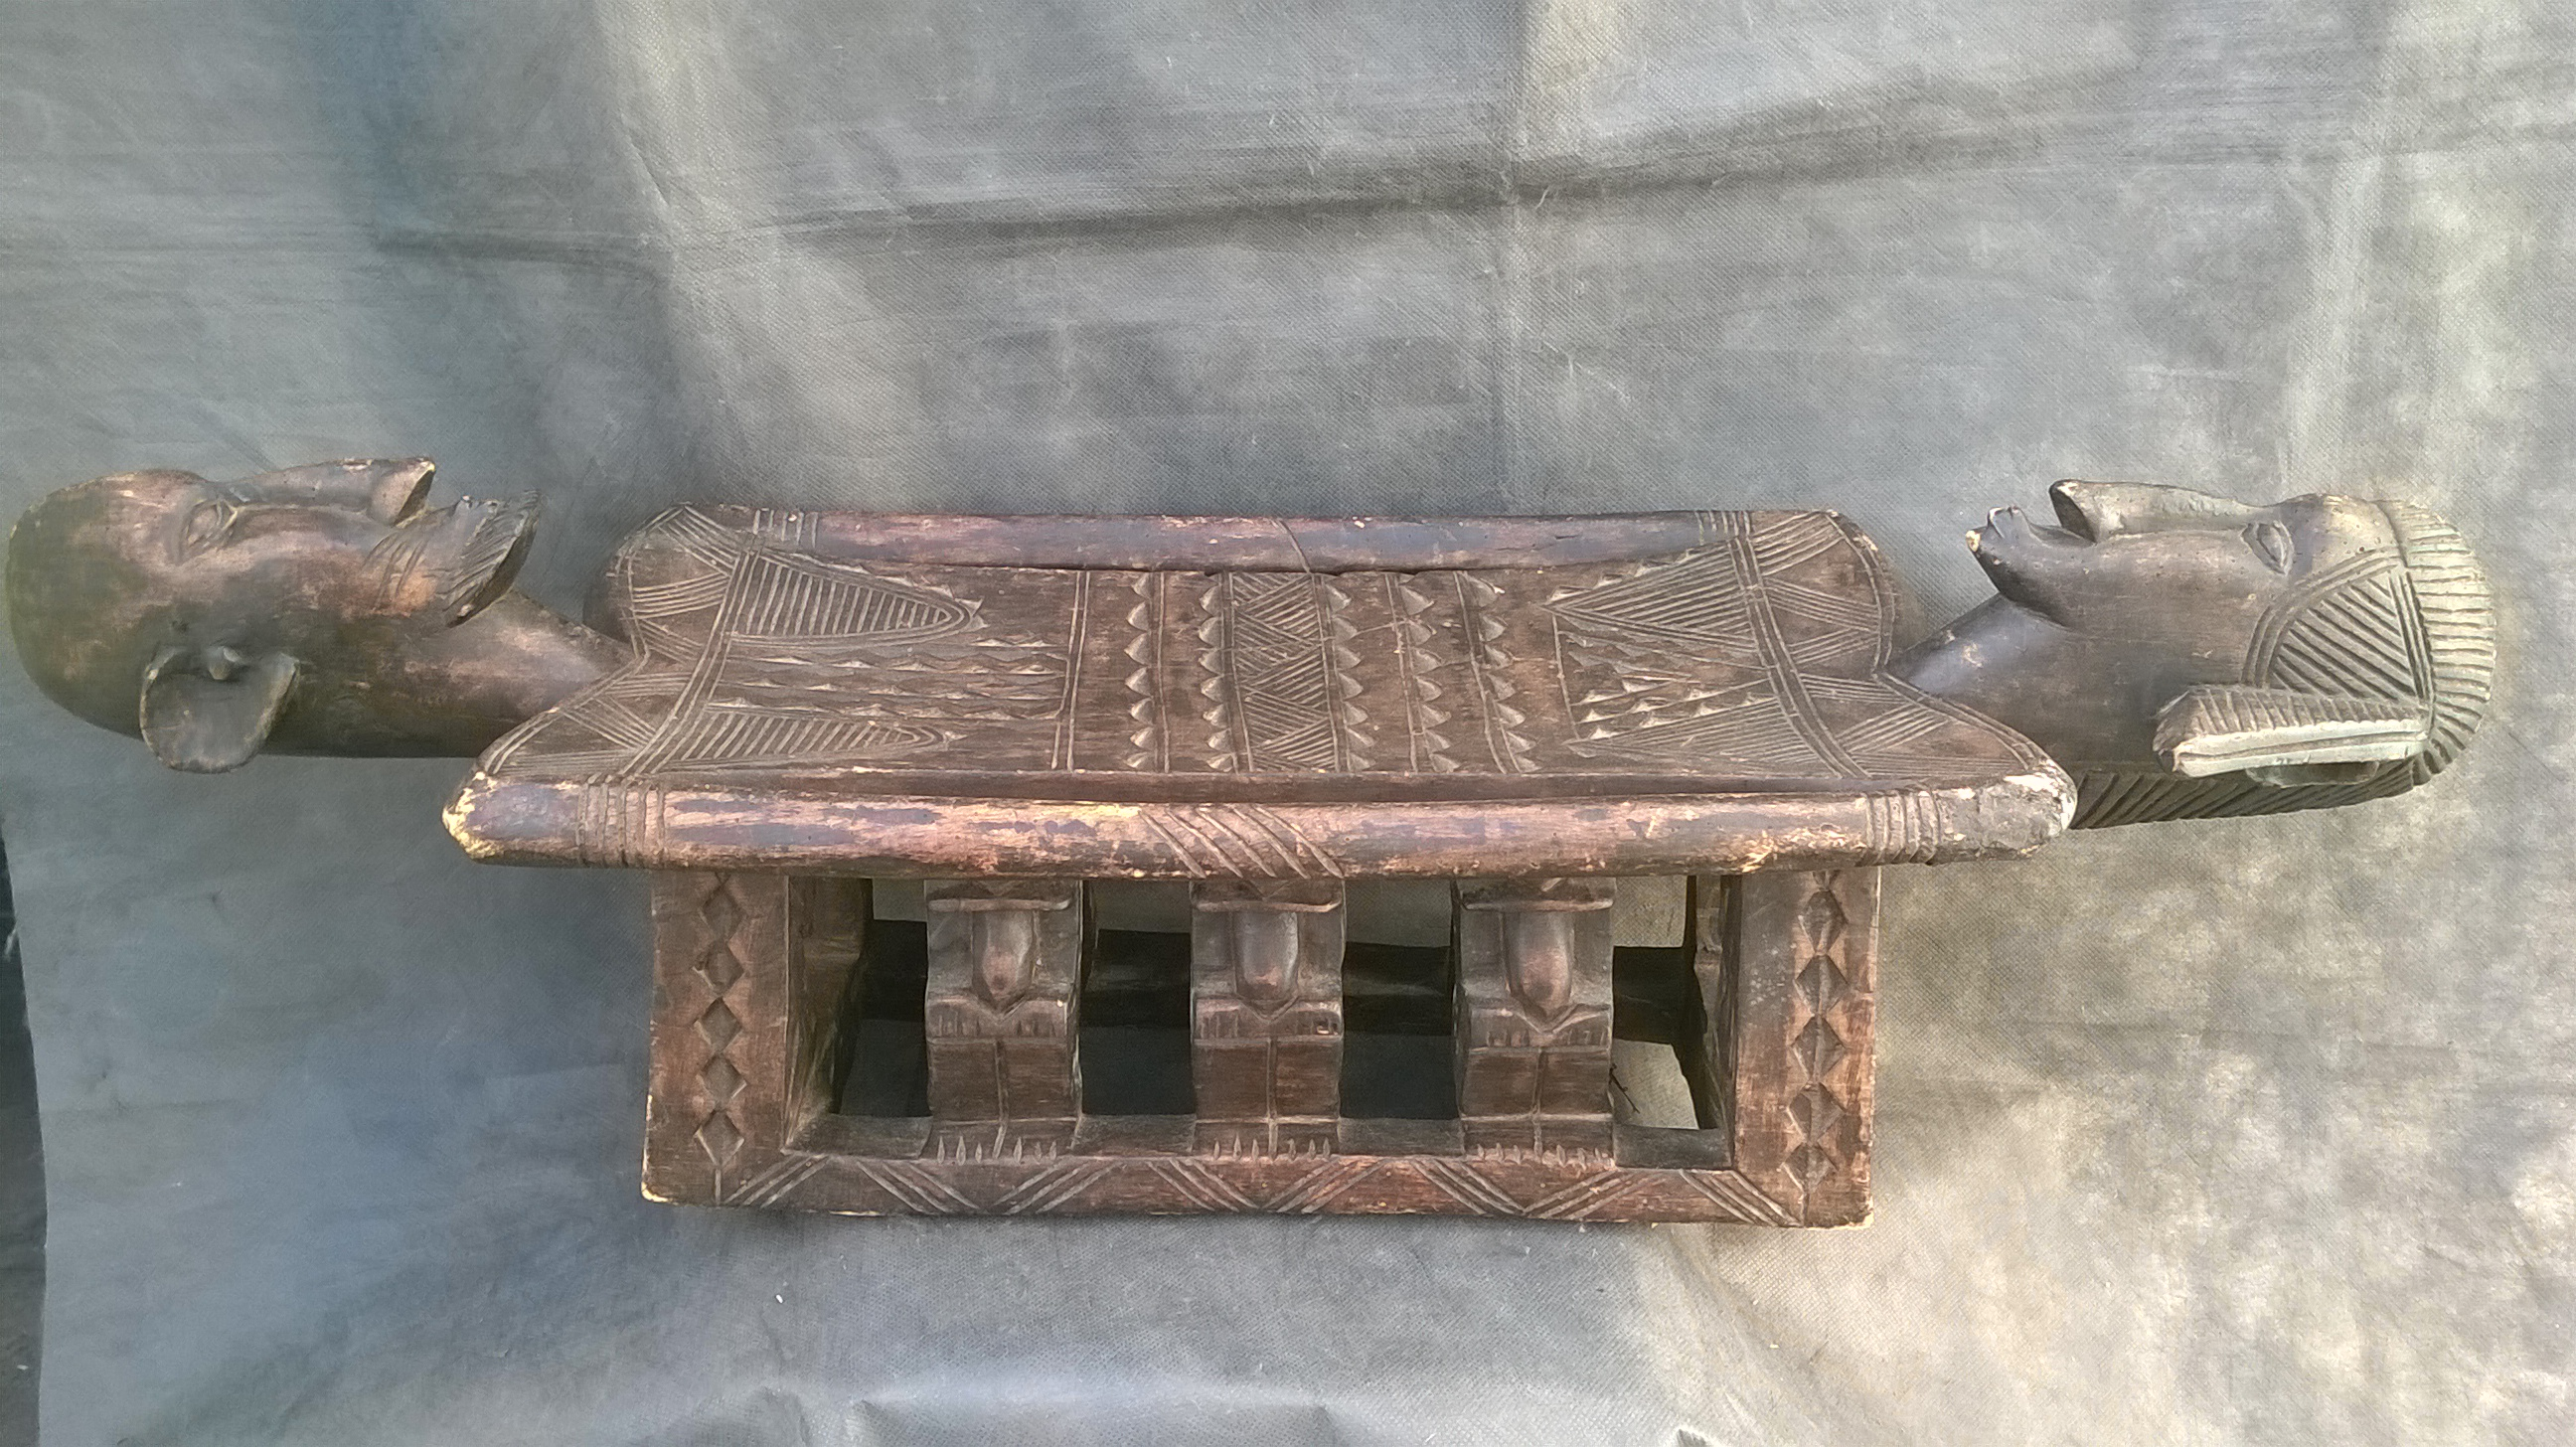 ma-table dogon 105 x 34 xht31.5cm (2)